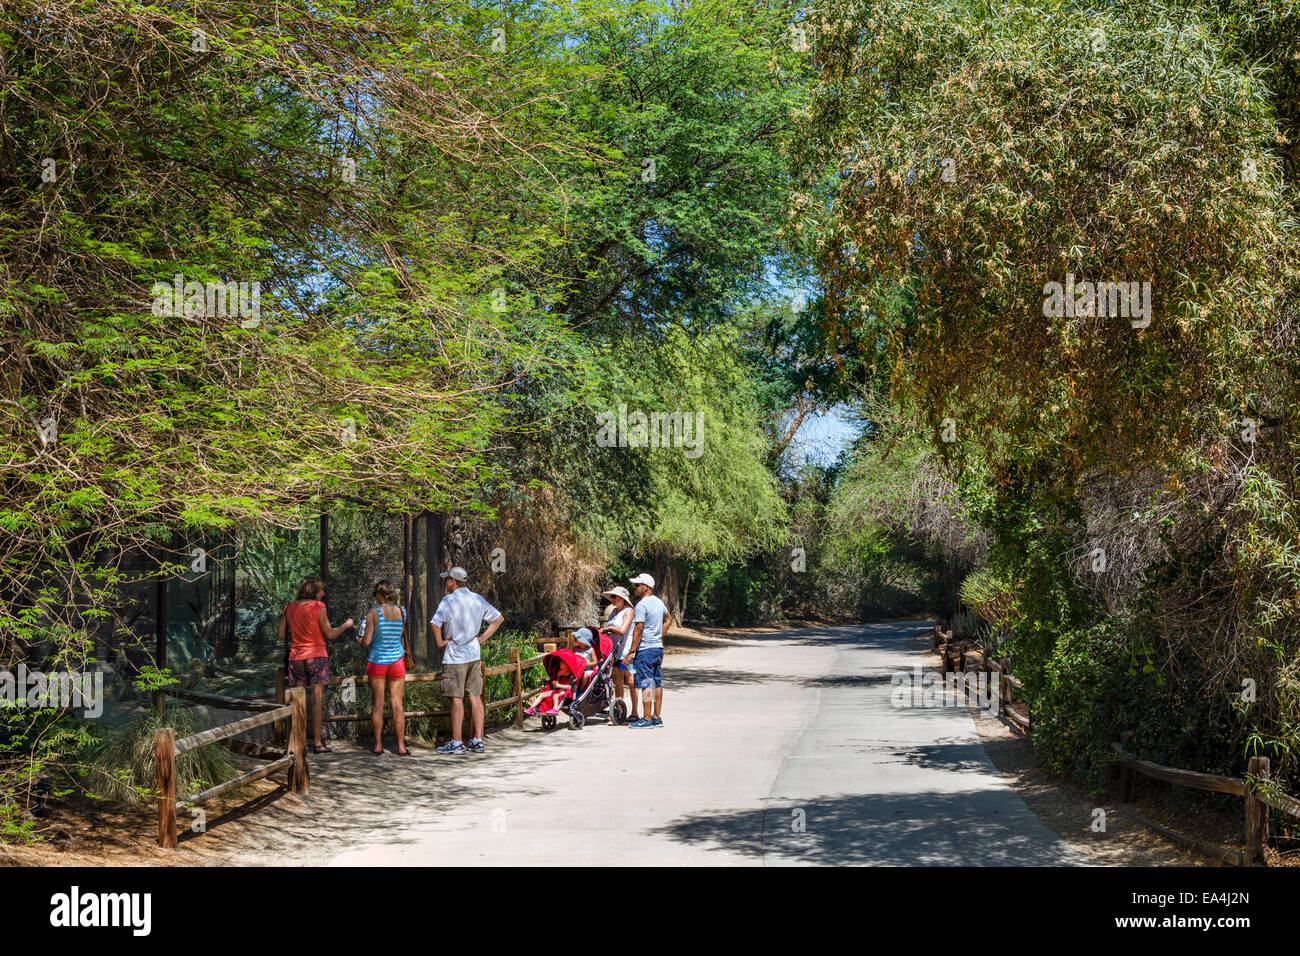 Visitors at the Living Desert Zoo and Gardens, Palm Desert, Riverside County, Southern California, USA - Stock Image